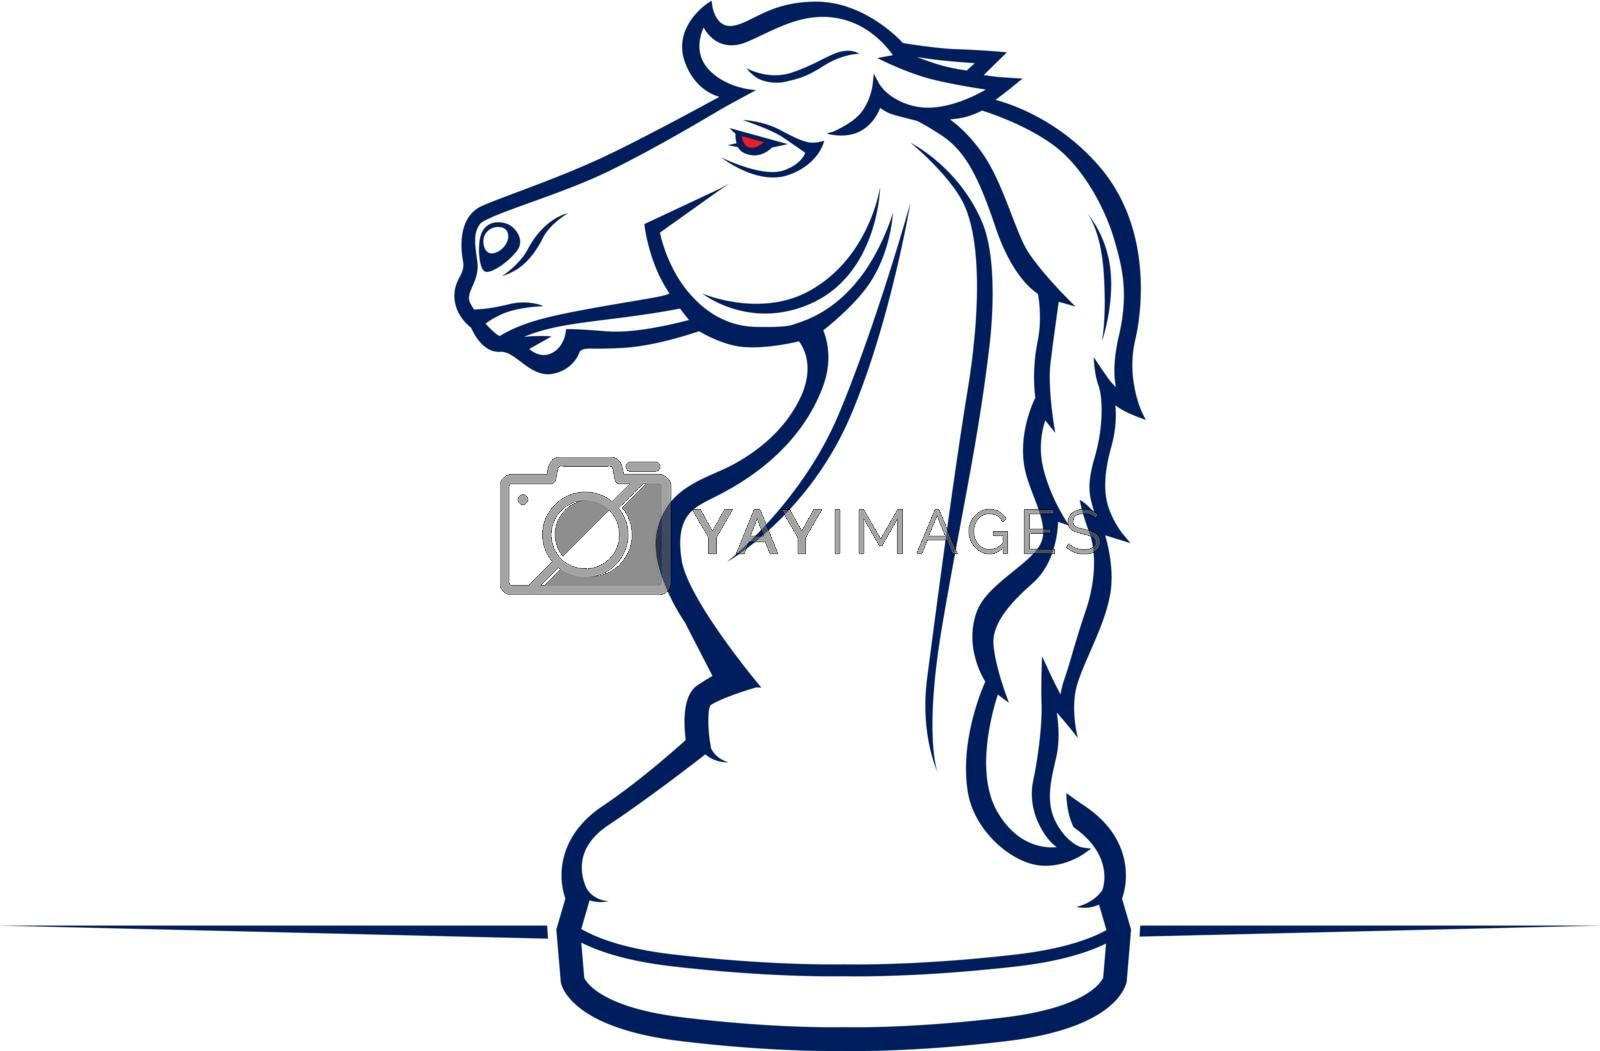 Chess Horse Icon Royalty Free Stock Image Stock Photos Royalty Free Images Vectors Footage Yayimages